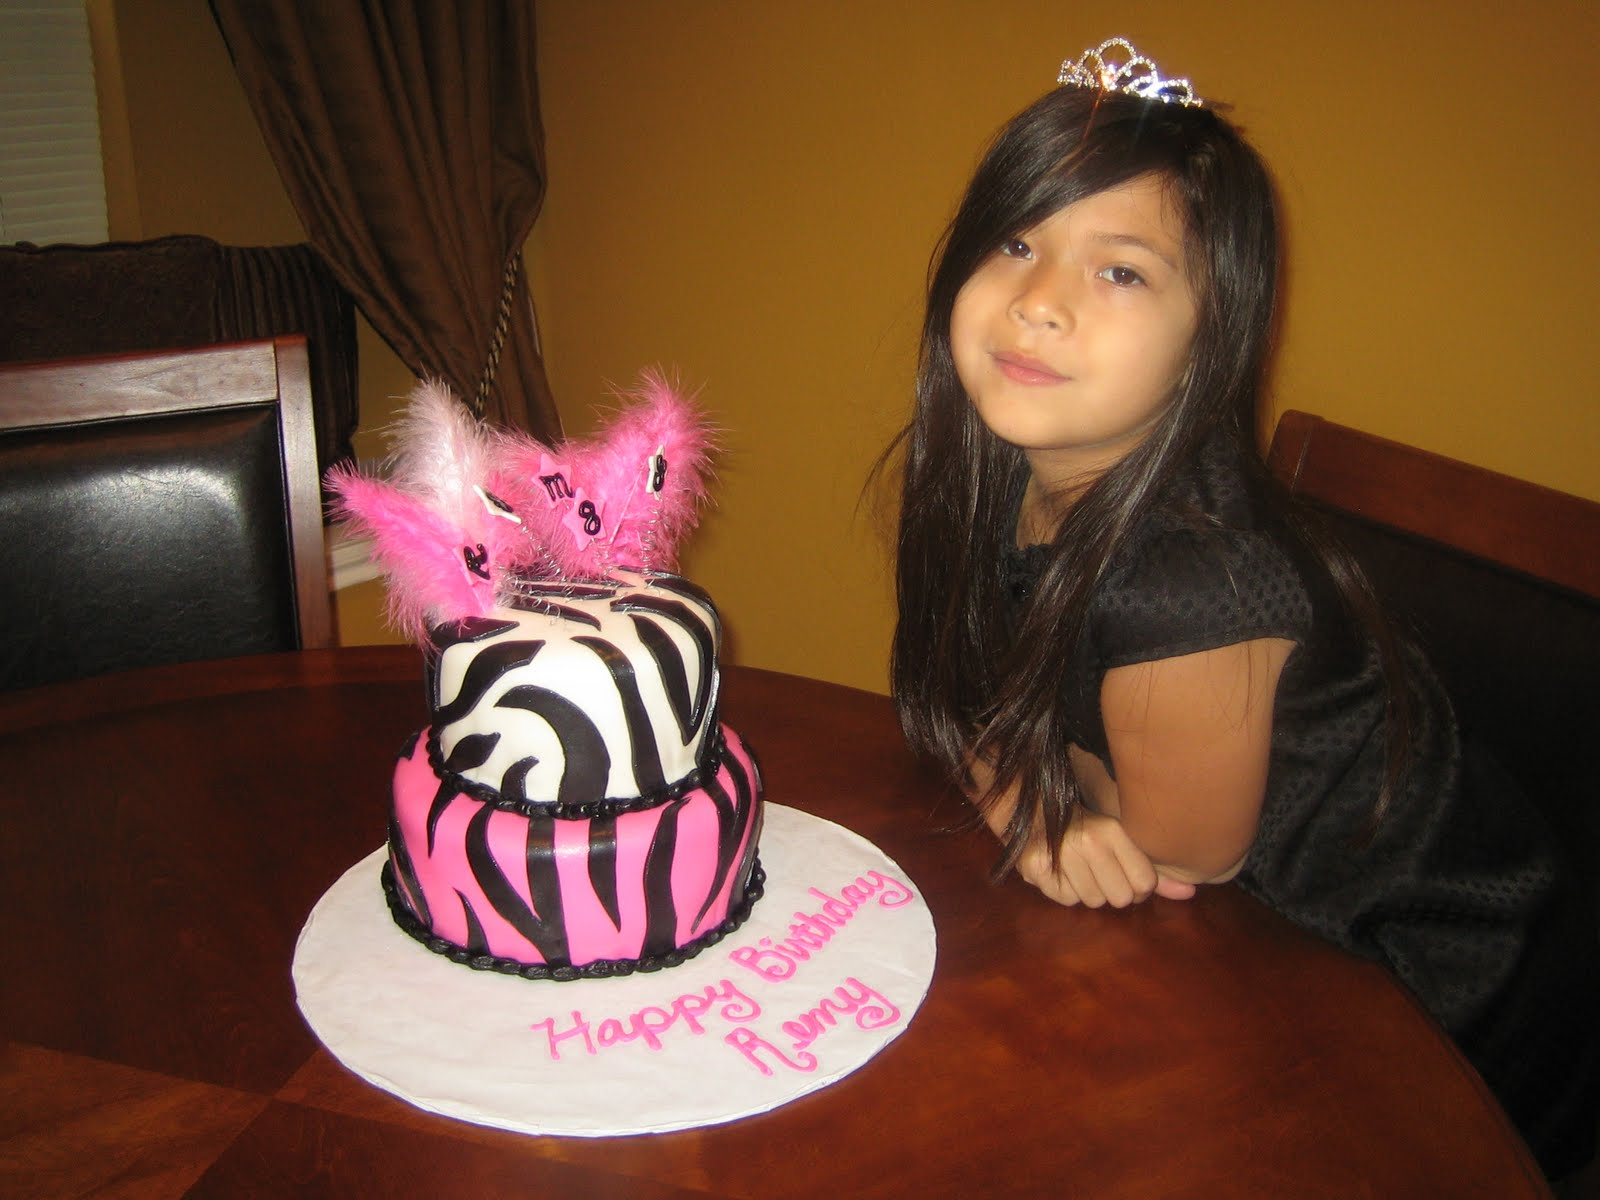 Katy Cake Girls: Happy 8th Birthday Remy!